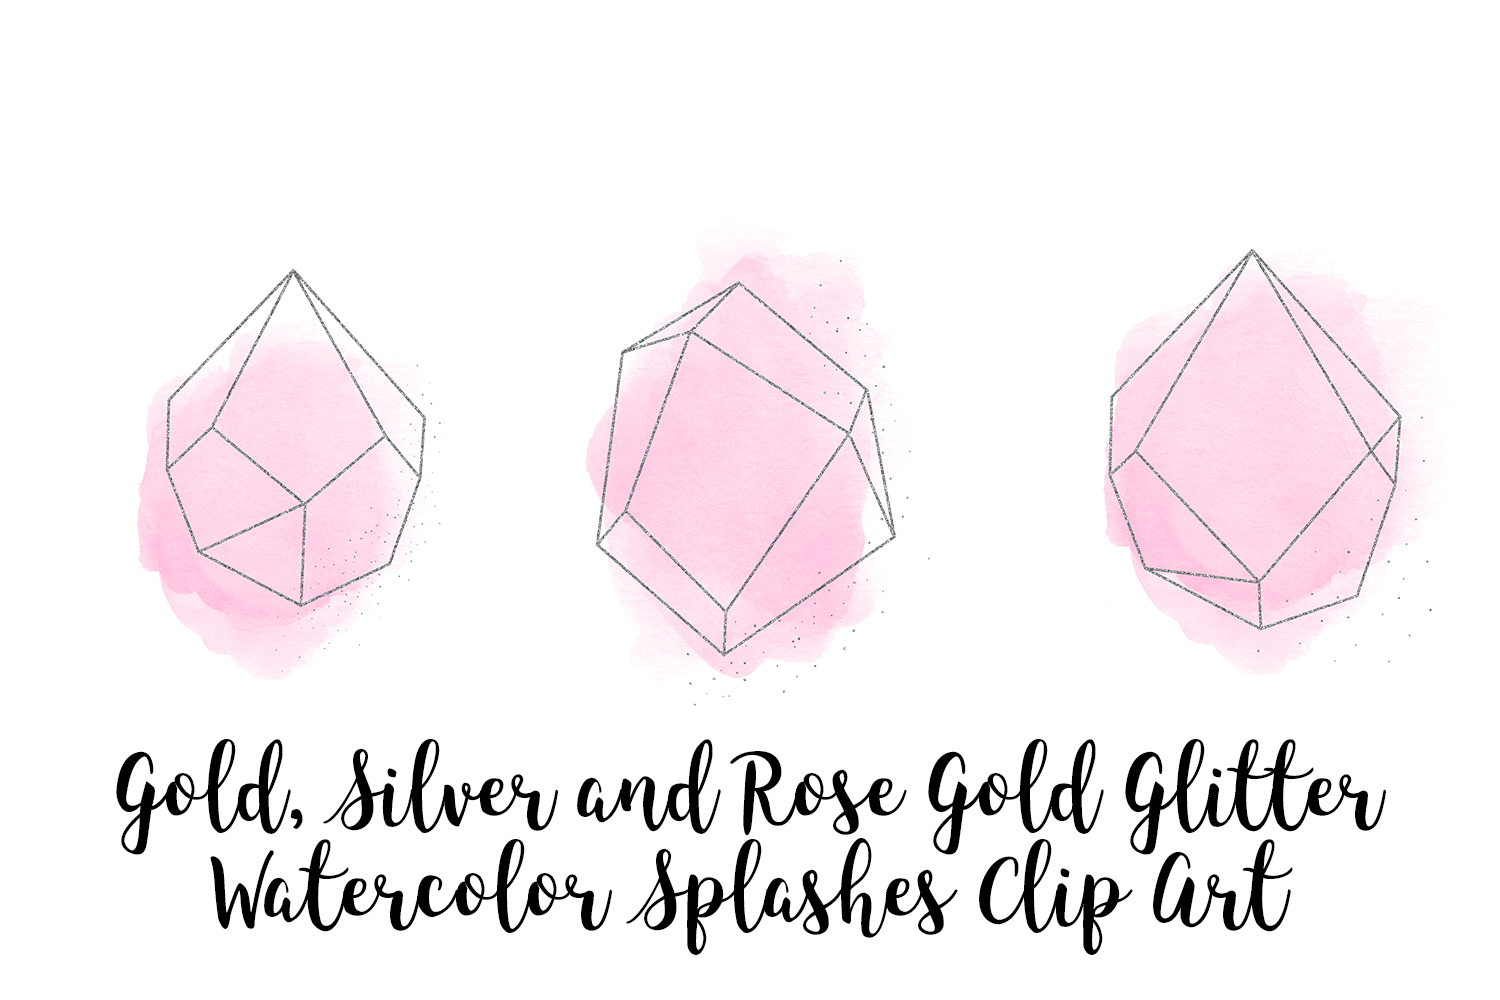 Gold, Silver and Rose Gold Crystals with Pink Watercolor example image 5